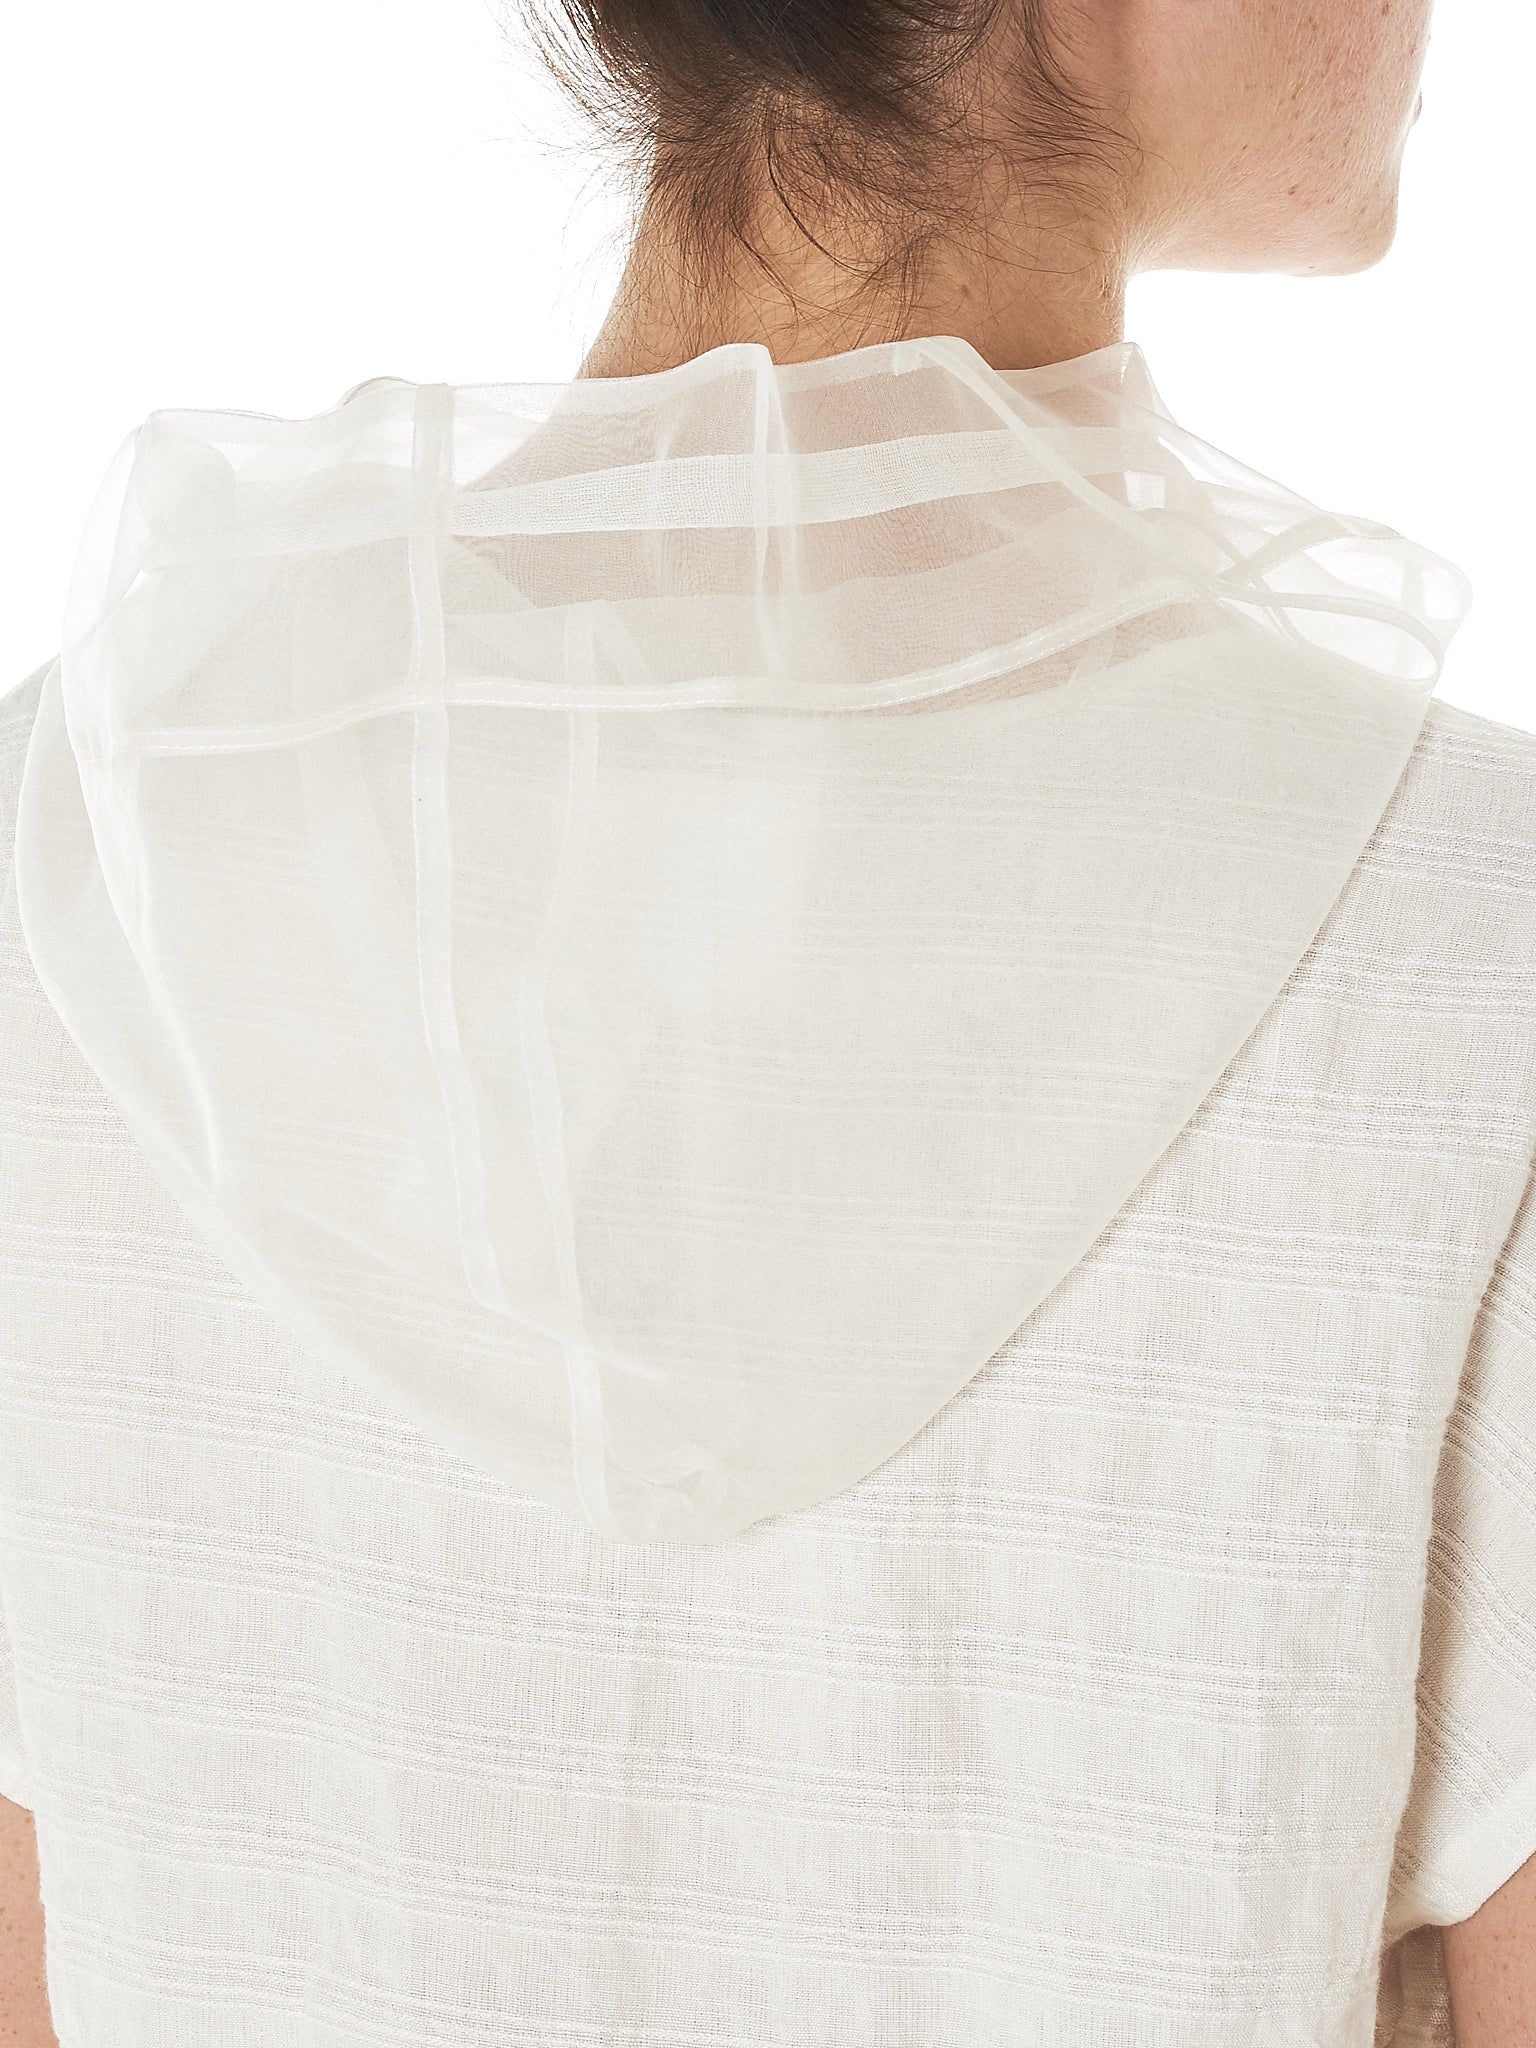 Shanshan Ruan Pleated Sweatshirt - Hlorenzo Detail 3